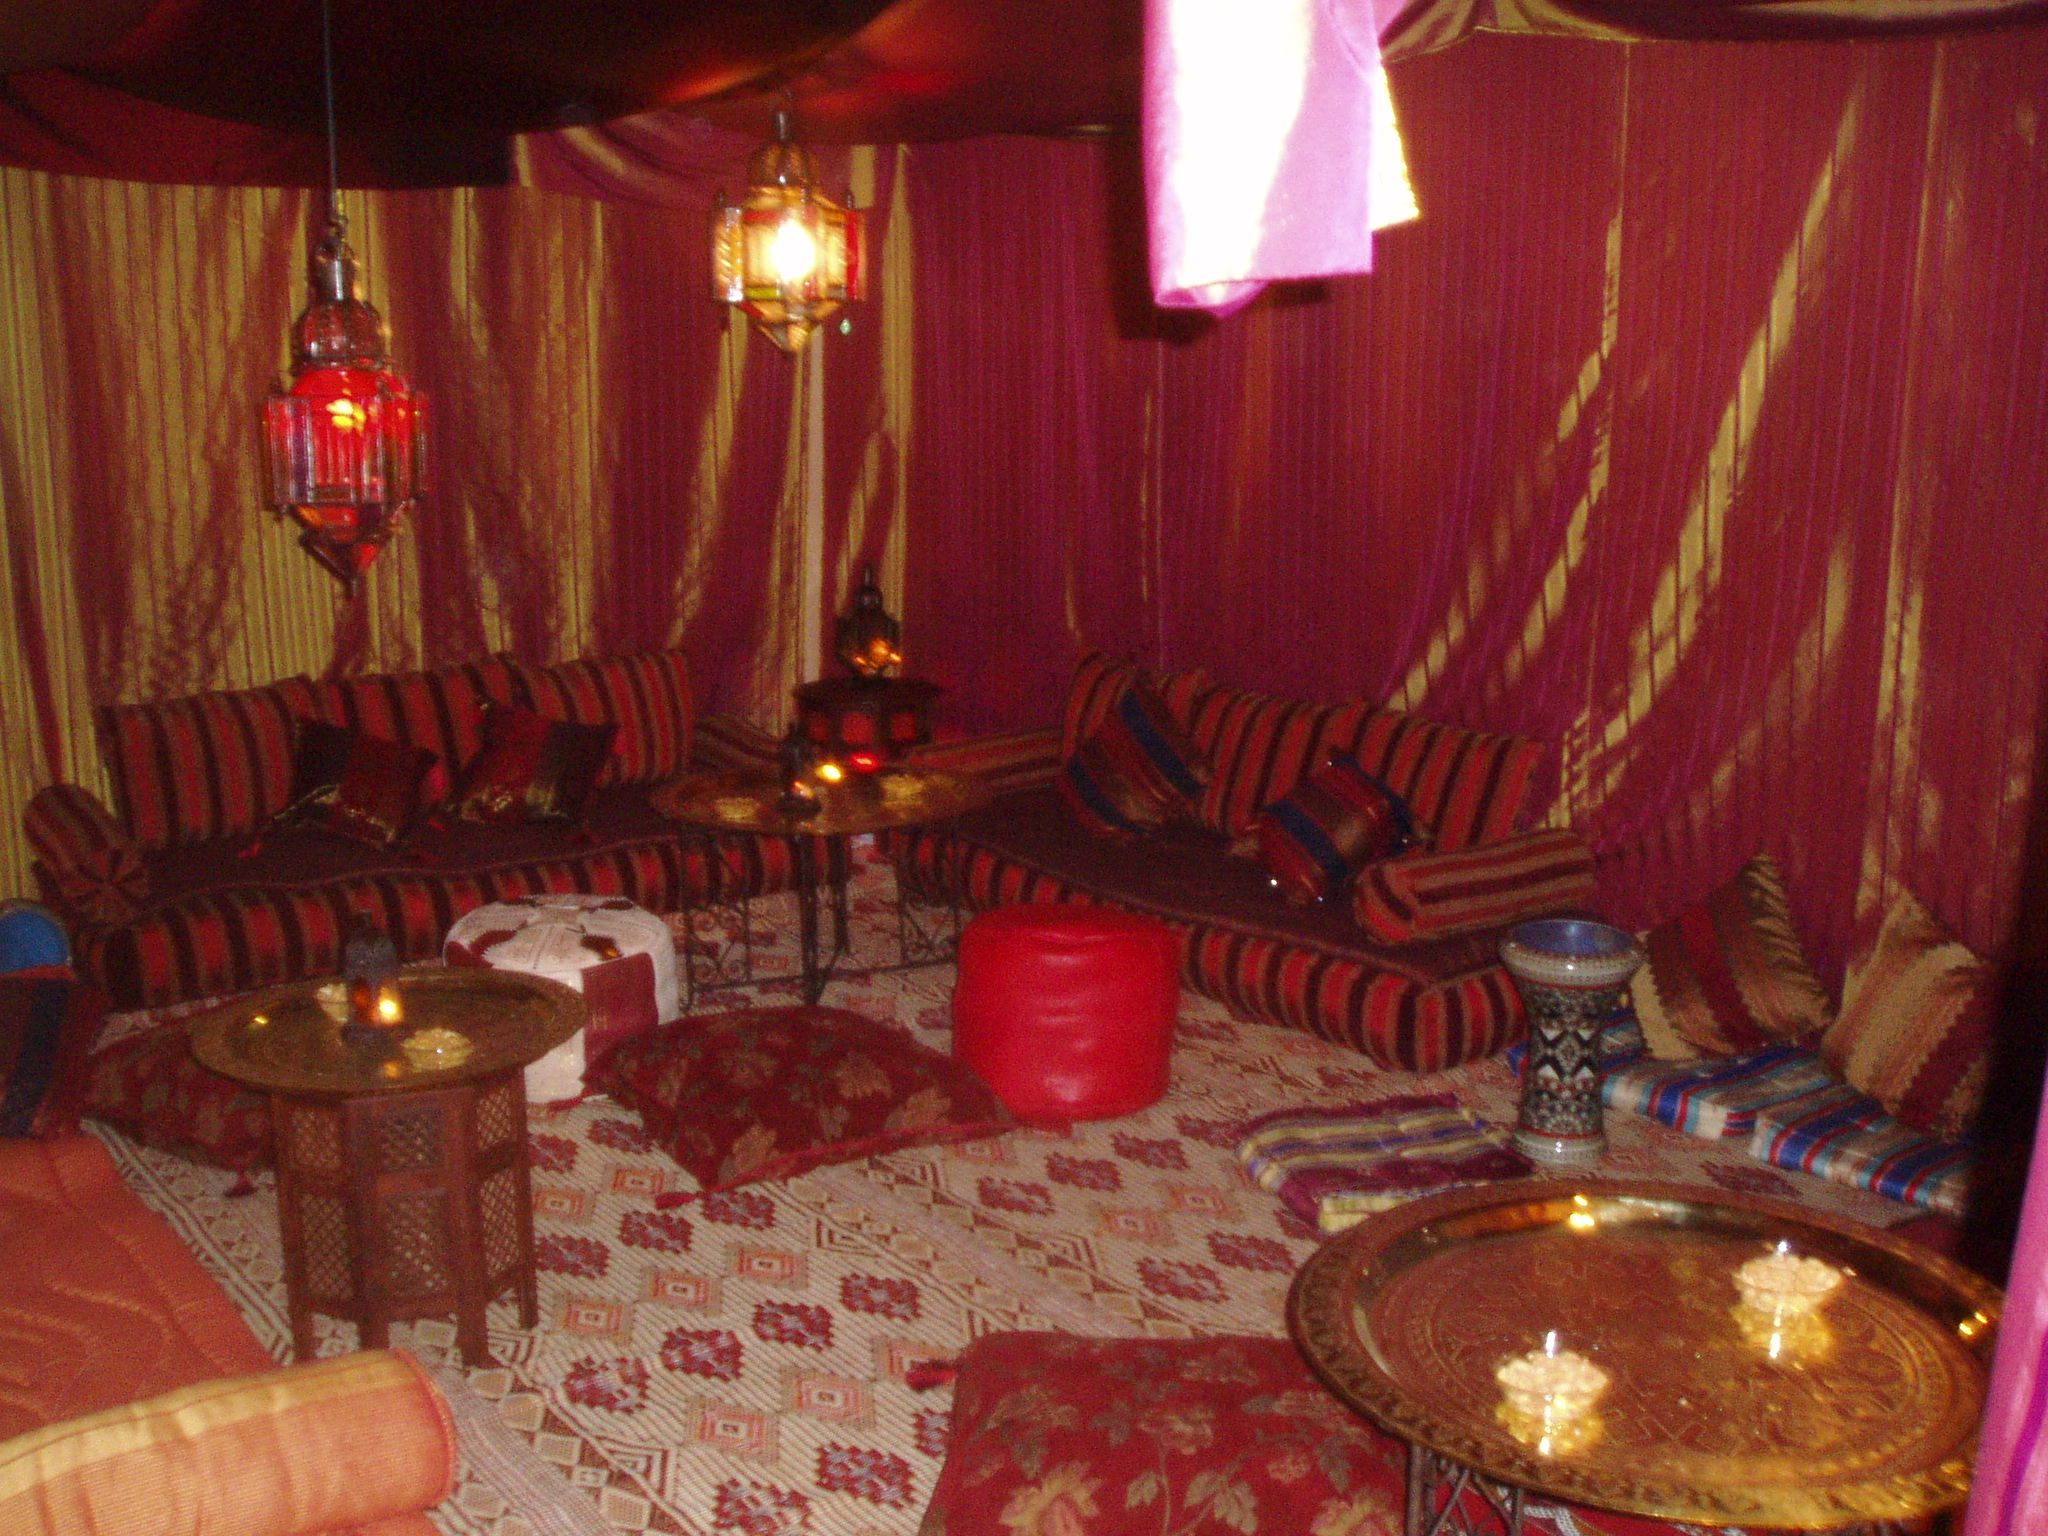 Moroccan decorating ideas moroccan decor ideas for a party5 furniture pinterest moroccan Moroccan decor ideas for the bedroom